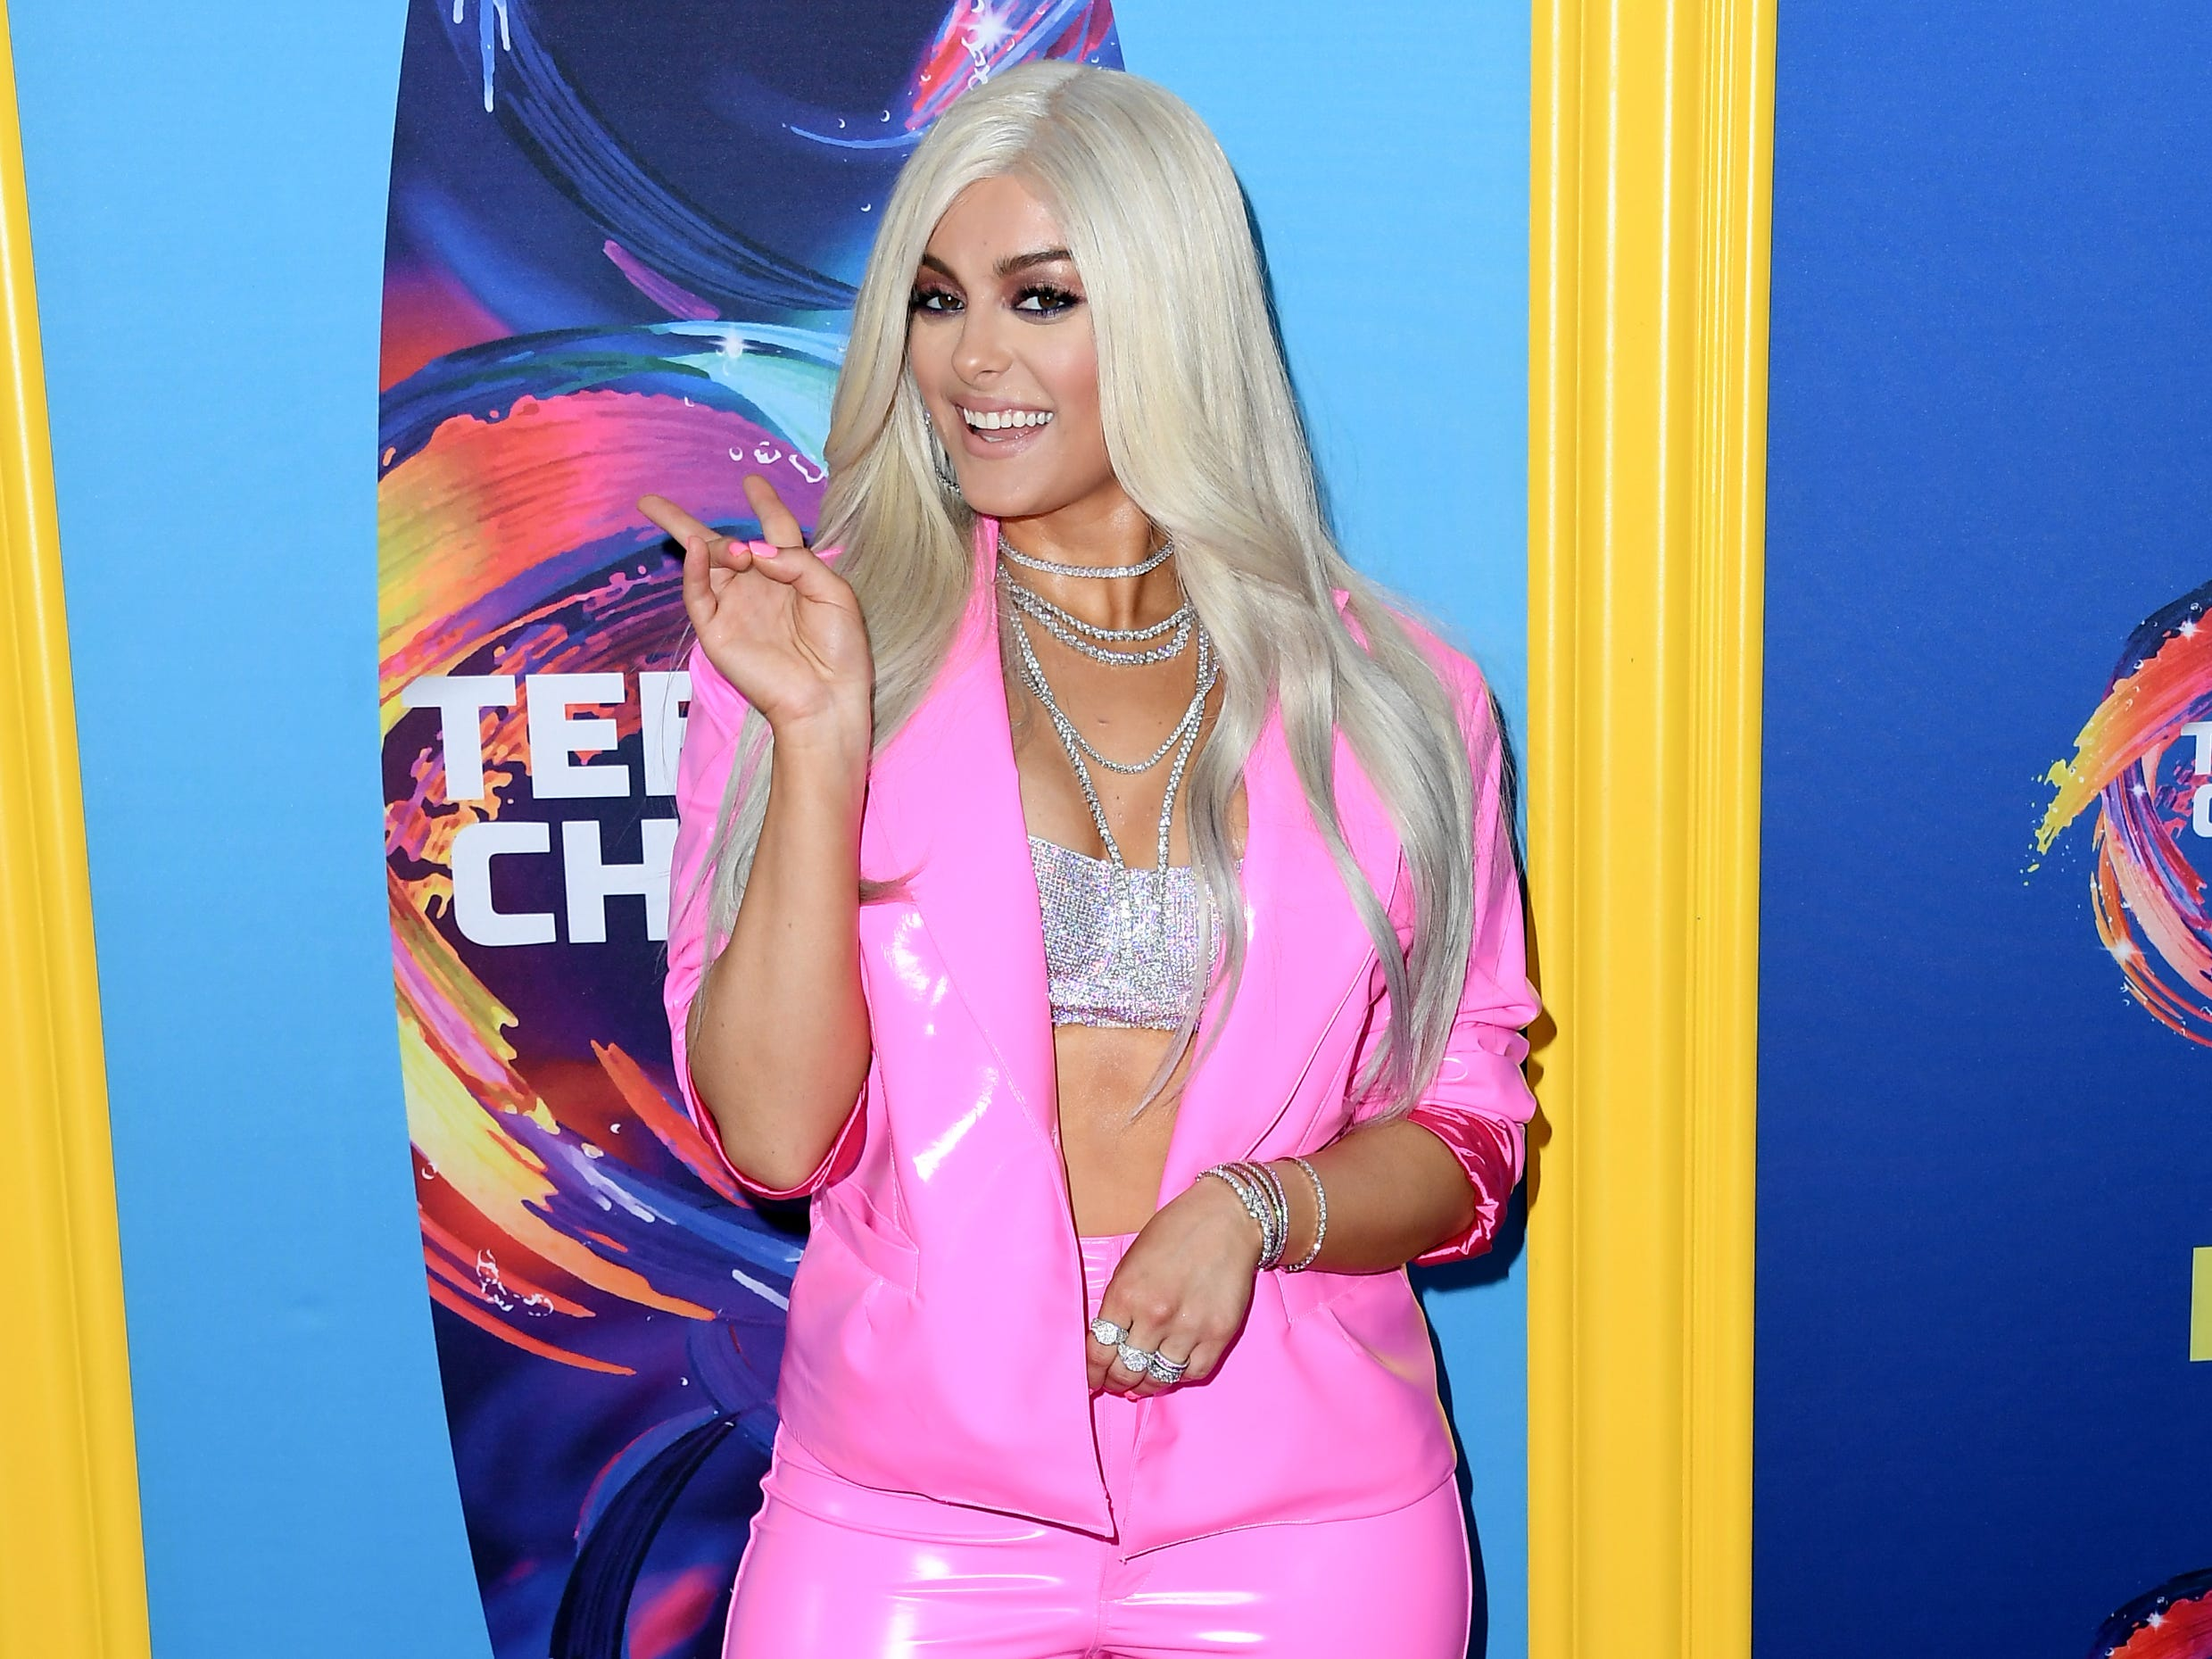 INGLEWOOD, CA - AUGUST 12:  Bebe Rexha attends FOX's Teen Choice Awards at The Forum on August 12, 2018 in Inglewood, California.  (Photo by Steve Granitz/WireImage) ORG XMIT: 775199266 ORIG FILE ID: 1015808782